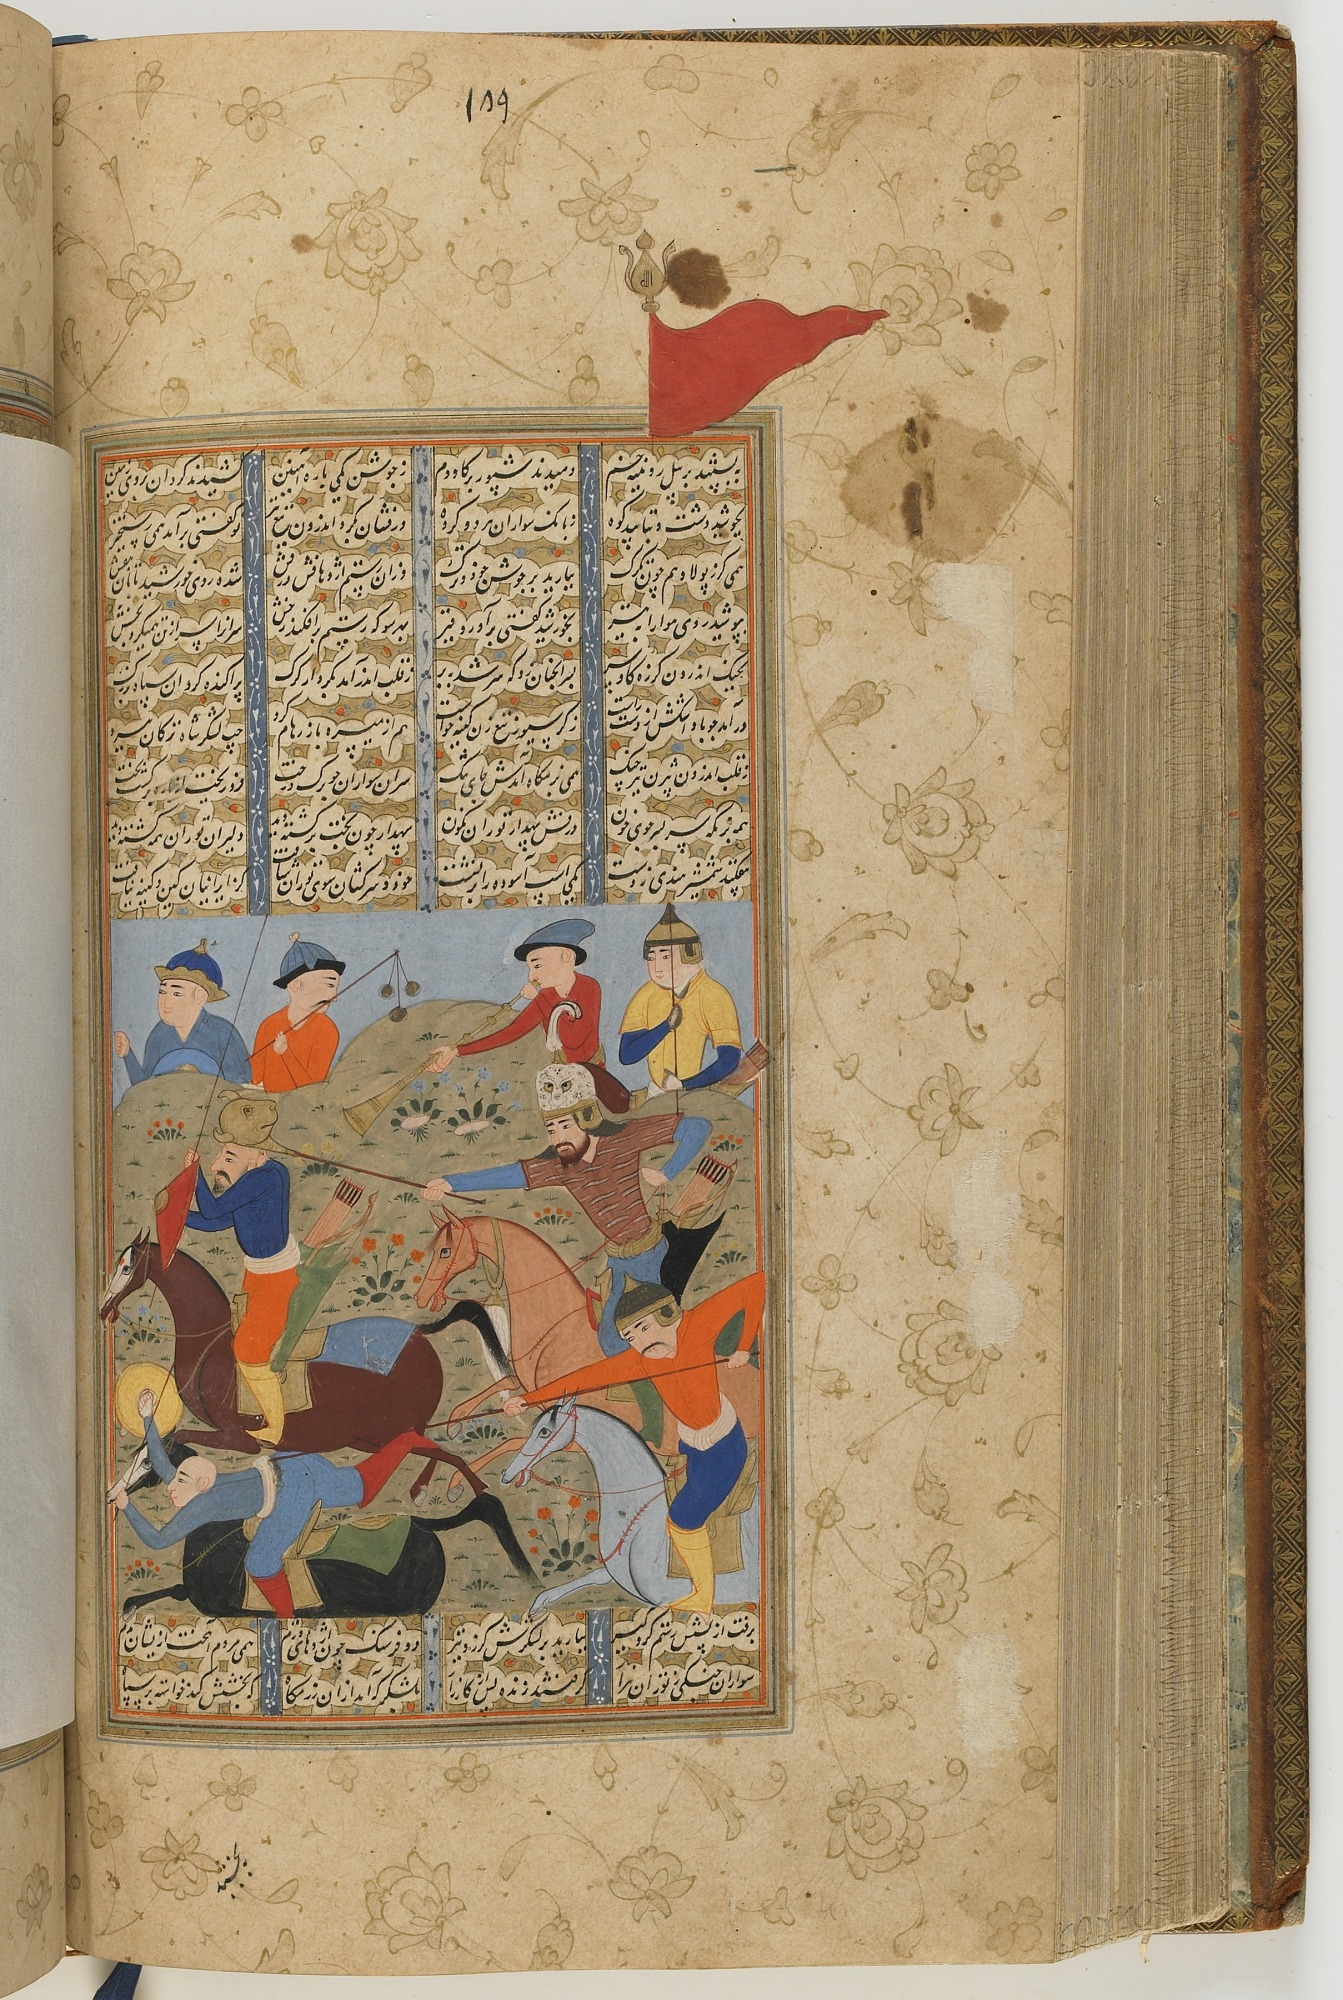 folio 190 verso: The Shahnama (Book of kings) by Firdausi (d. 1020)